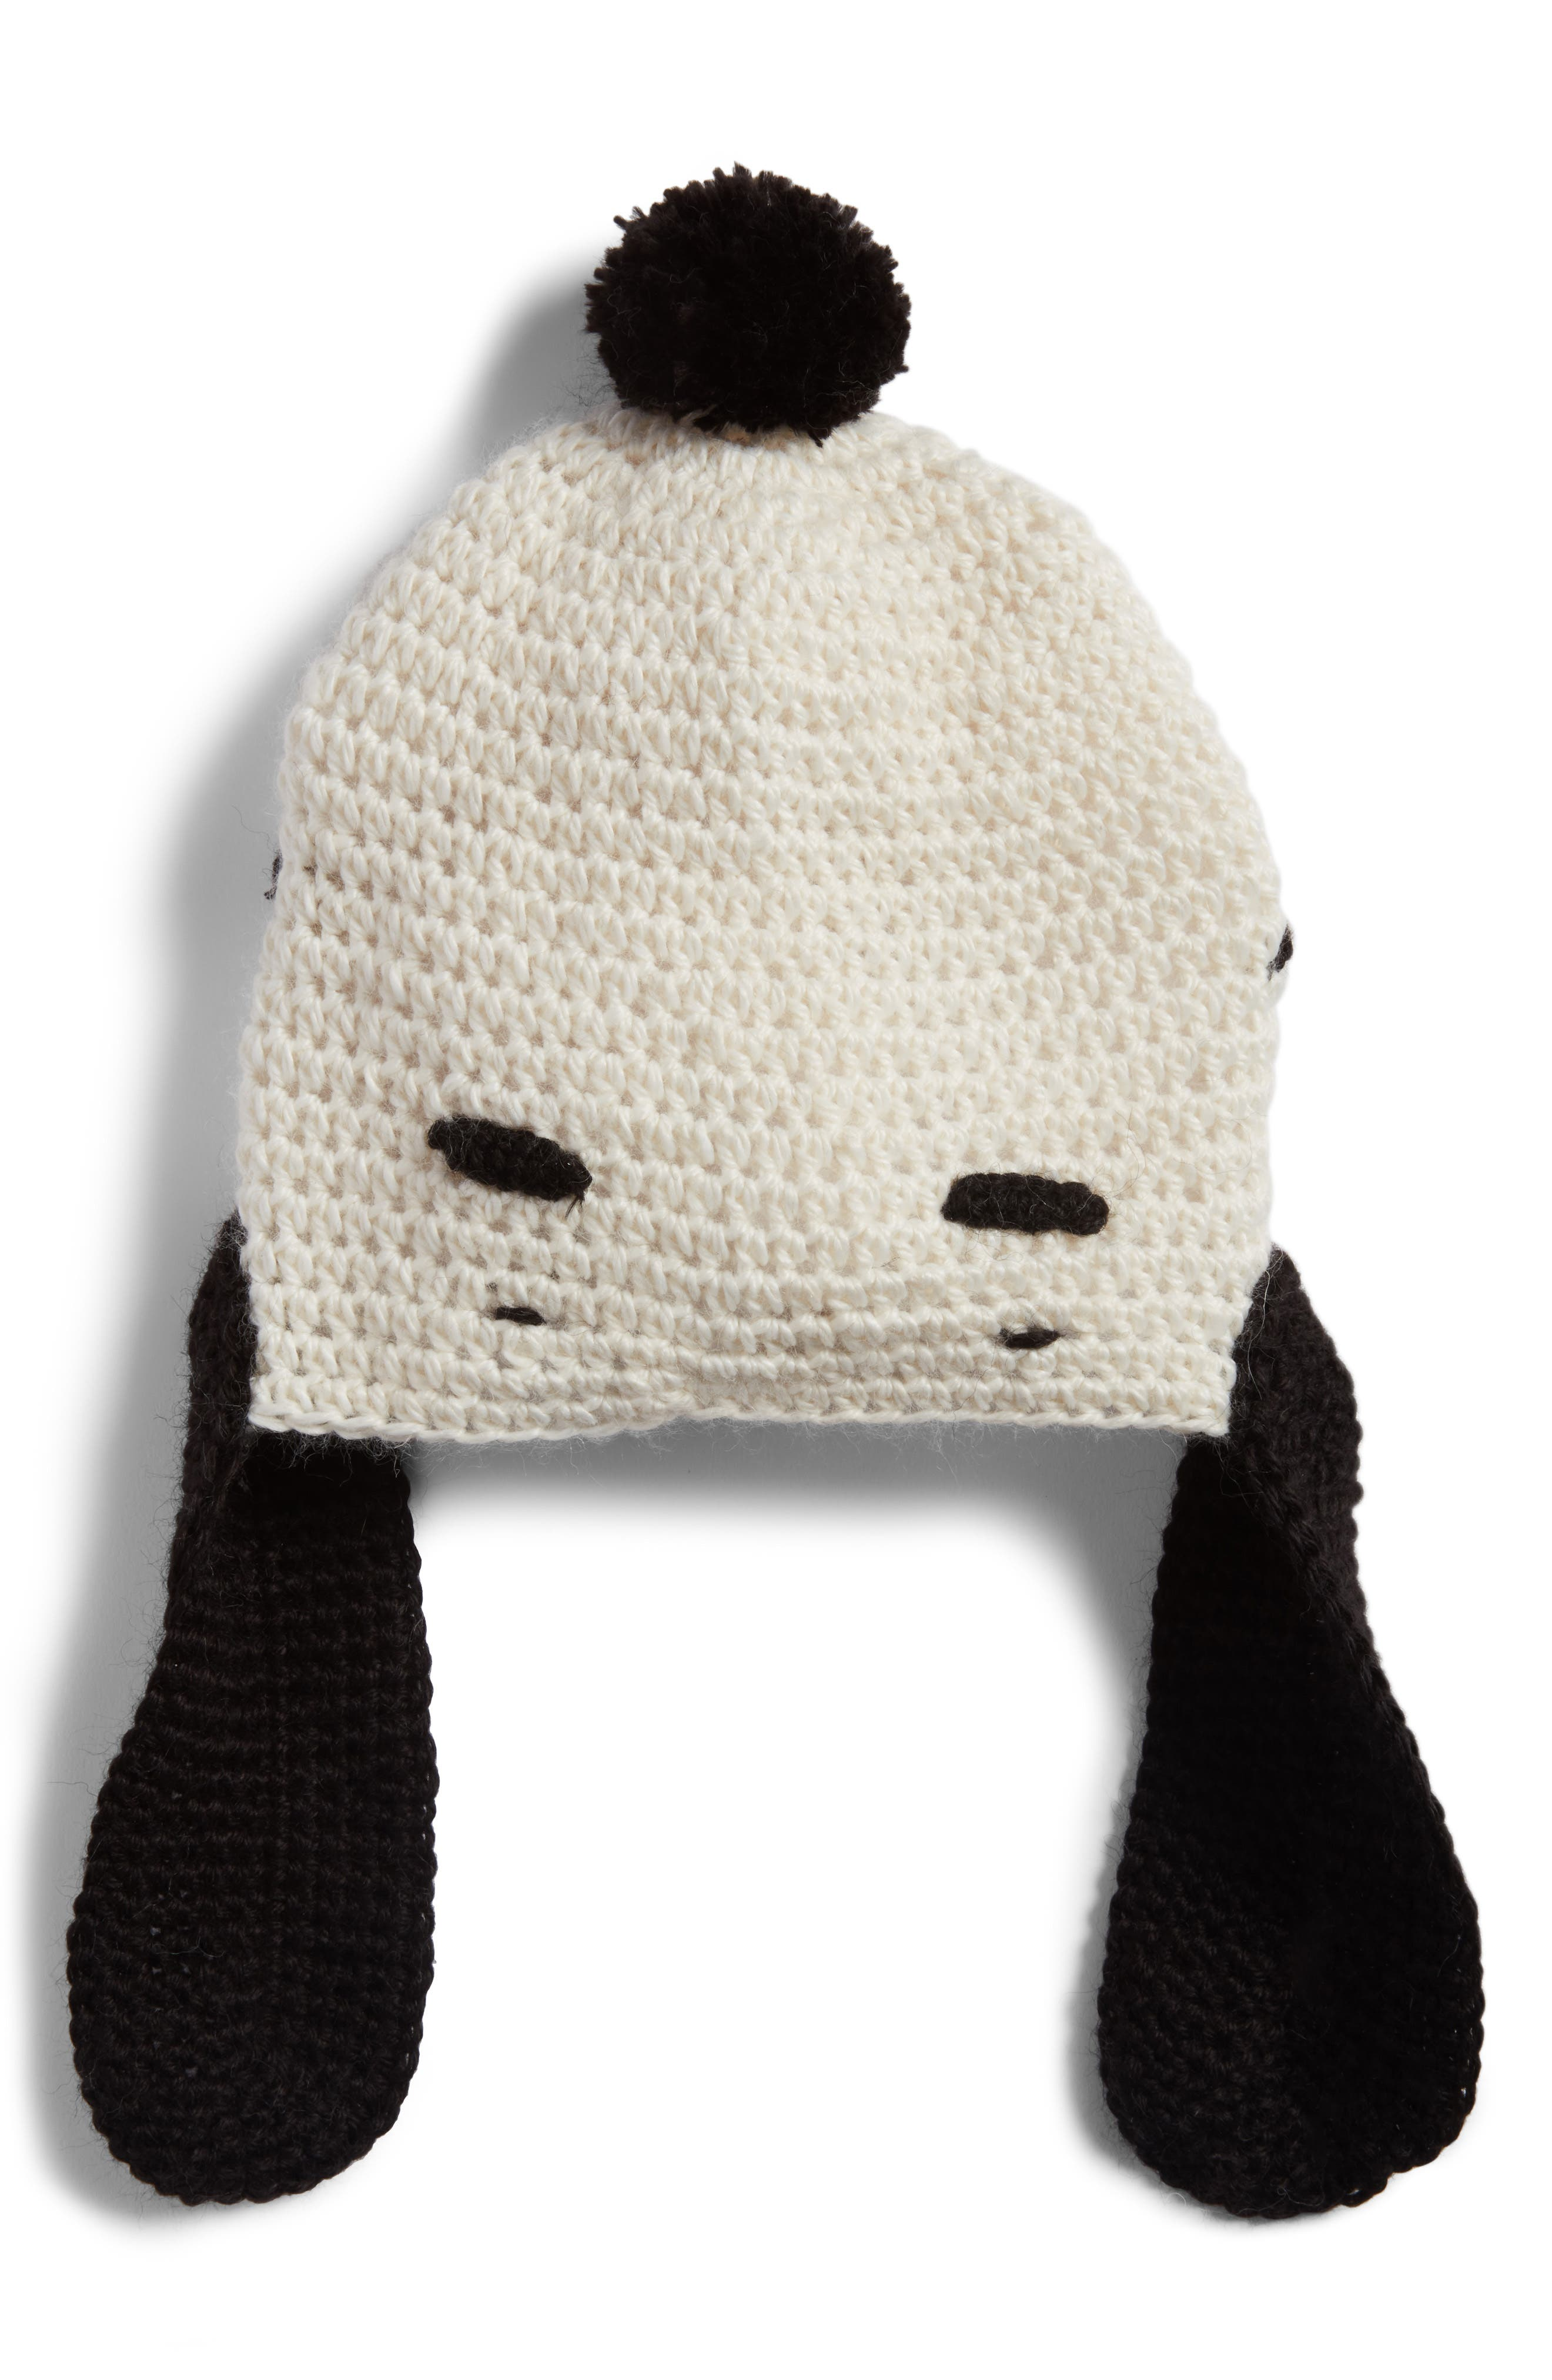 Krochet Kids Snoopy Beanie (Kids) (Limited Edition) (Nordstrom Exclusive)